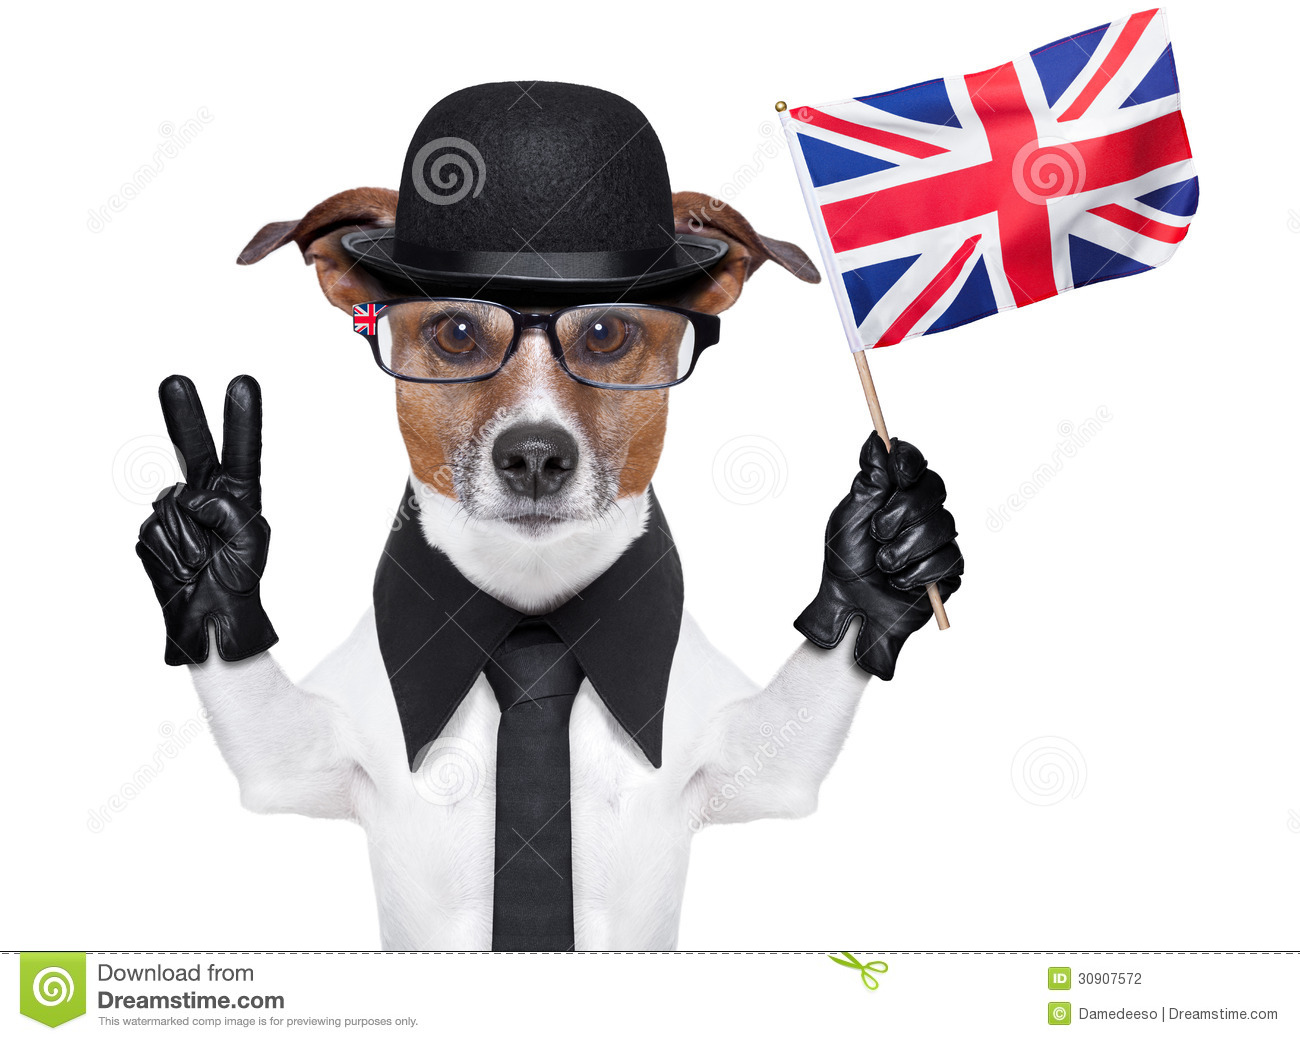 93a0d4fa93a80 British dog with black bowler hat and black suit waving flag